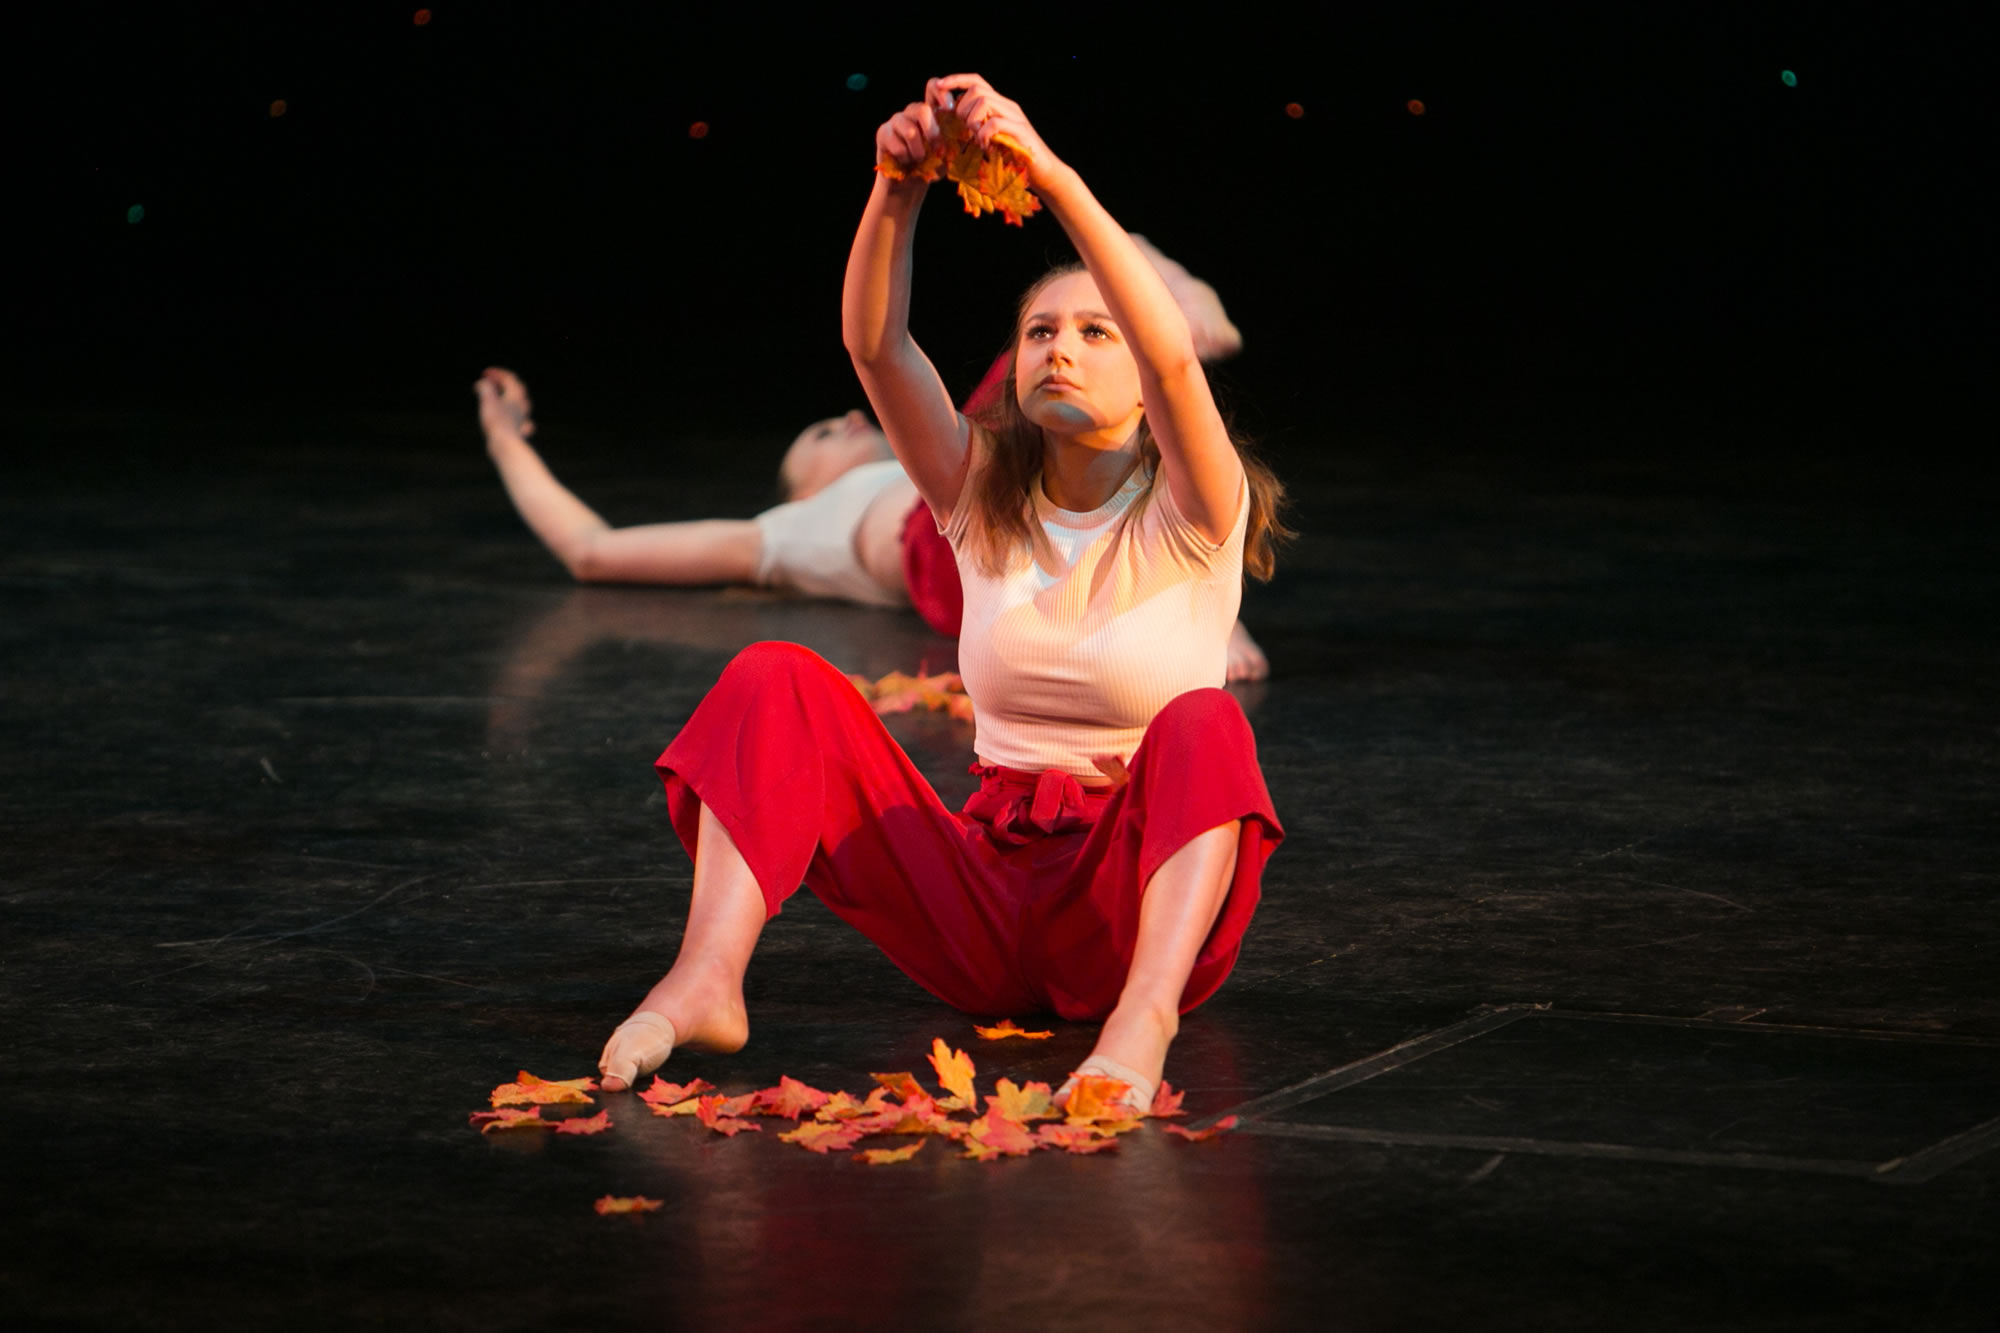 Hitchin_School_of_Dance_Show_2019-SM1_2529.jpg